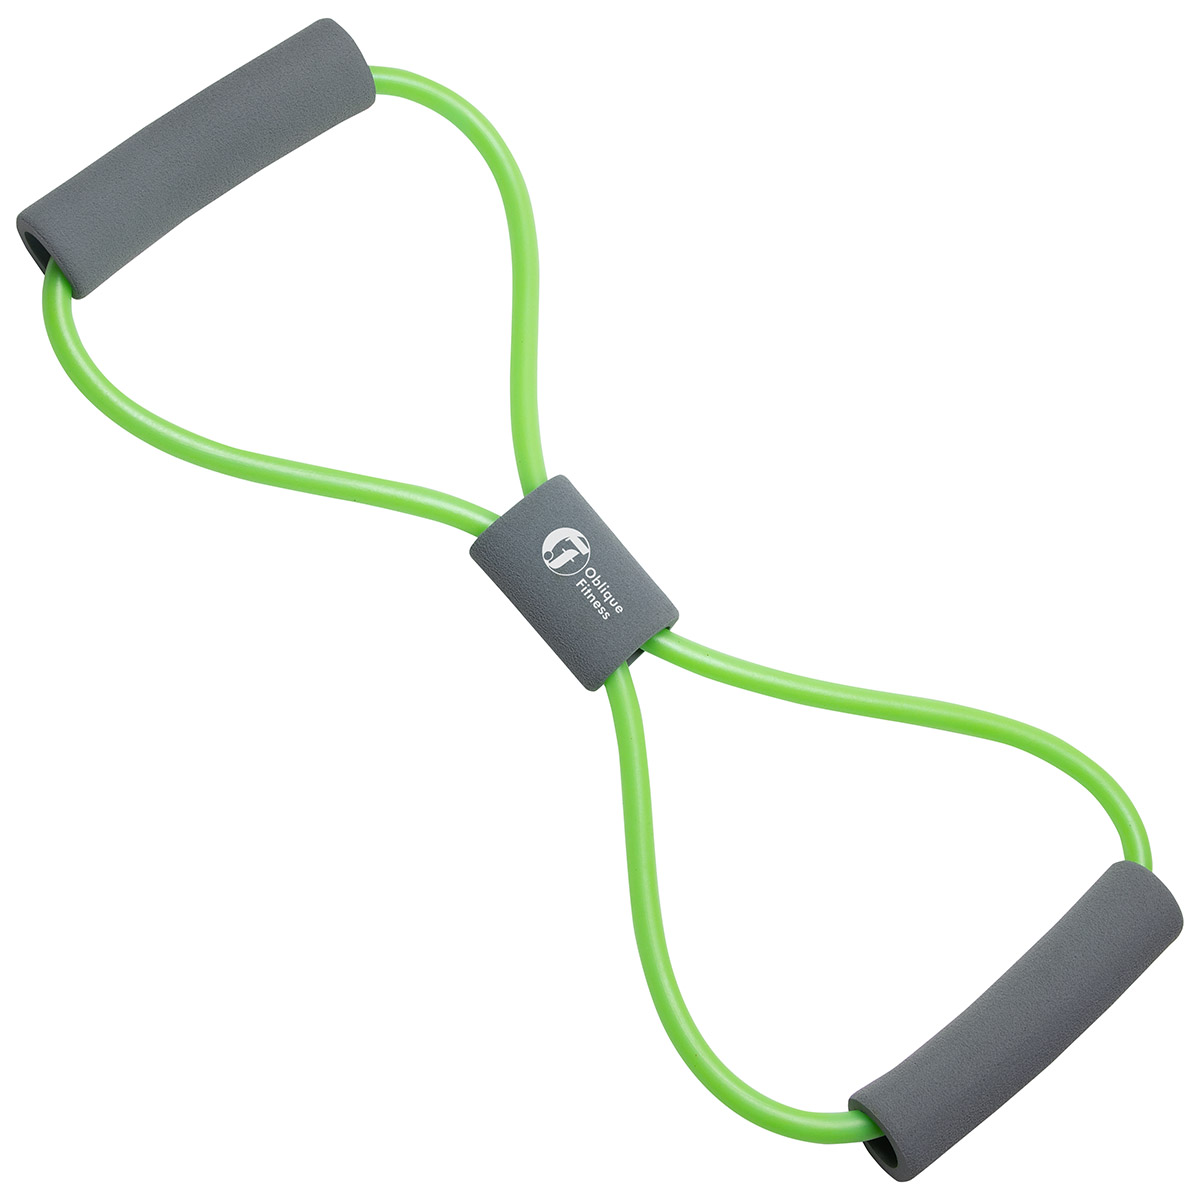 Fitness First Stretch Expander - Light Resistance, WHF-LR15 - 1 Colour Imprint